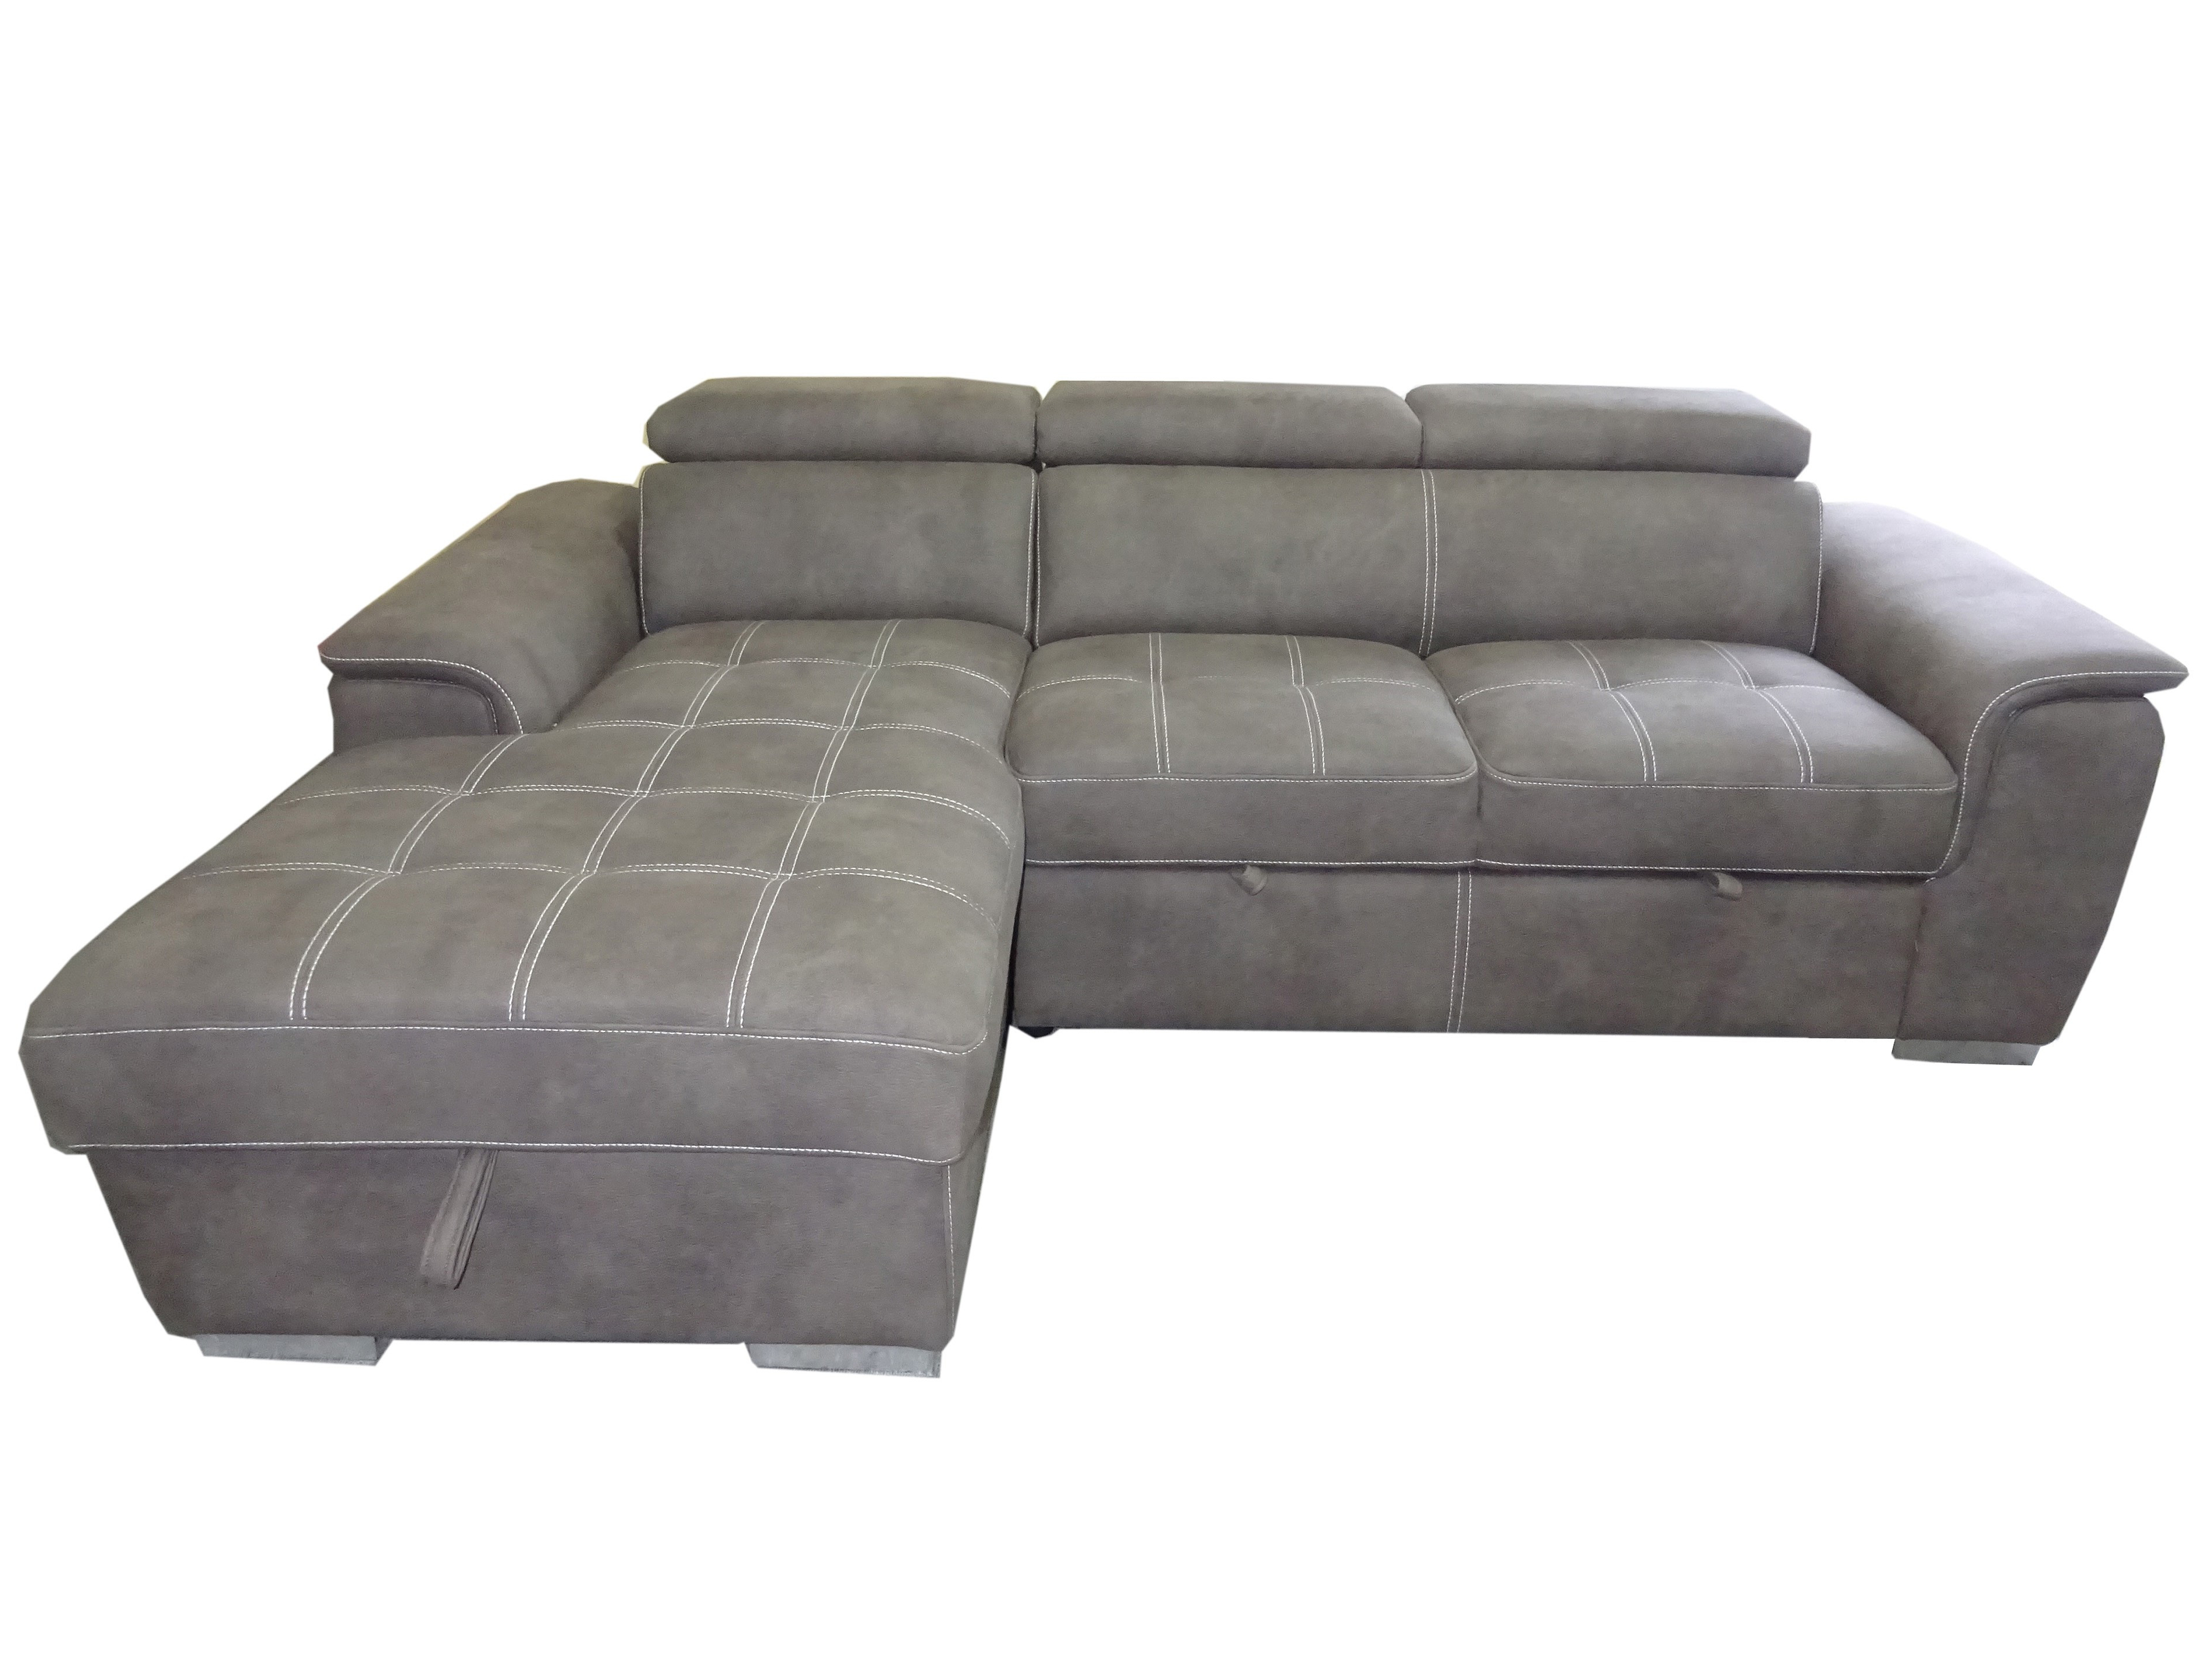 Primo Lucca 2 Piece Sectional Sofa Bed (Gallery 10 of 20)